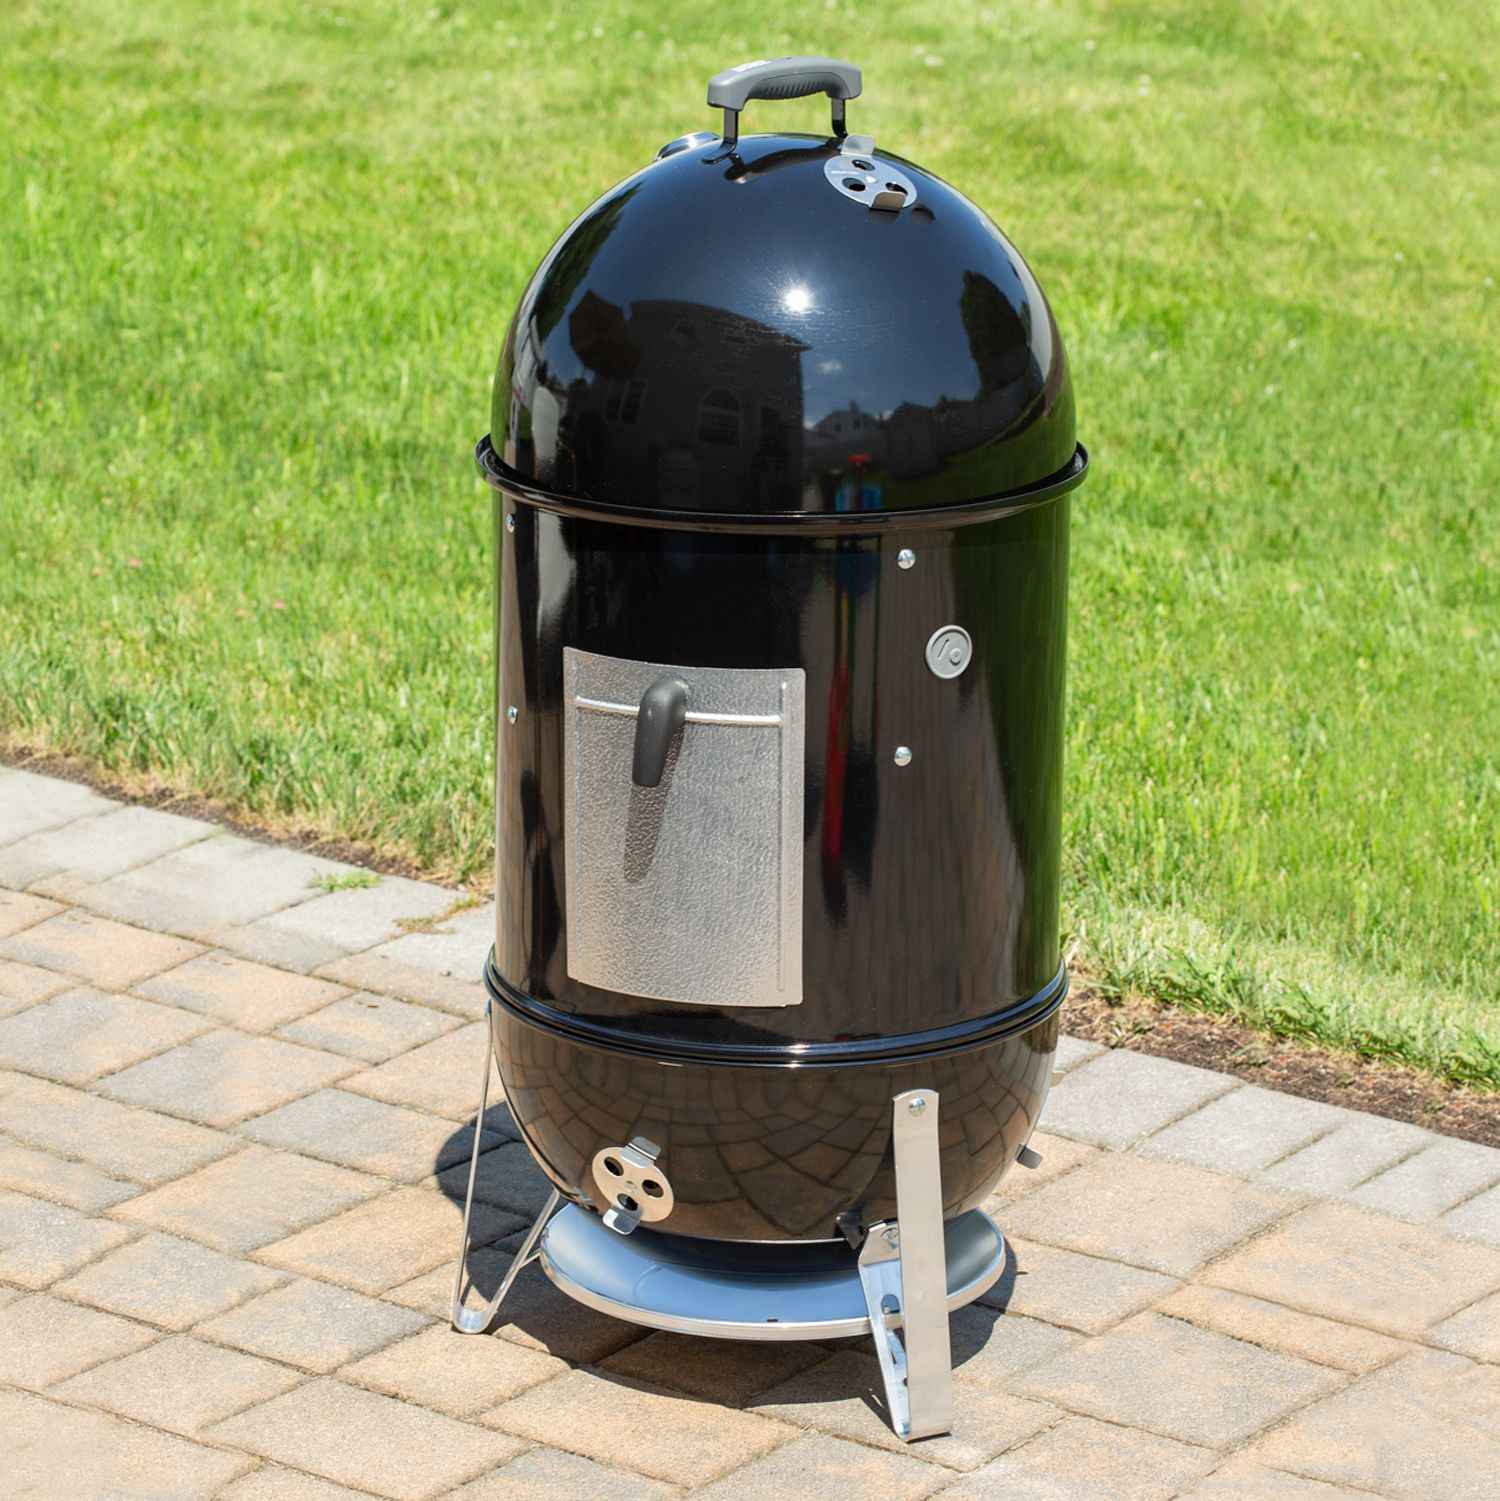 Weber Smokey Mountain 18-Inch Smoker Review: Manual Smoking Made Easy